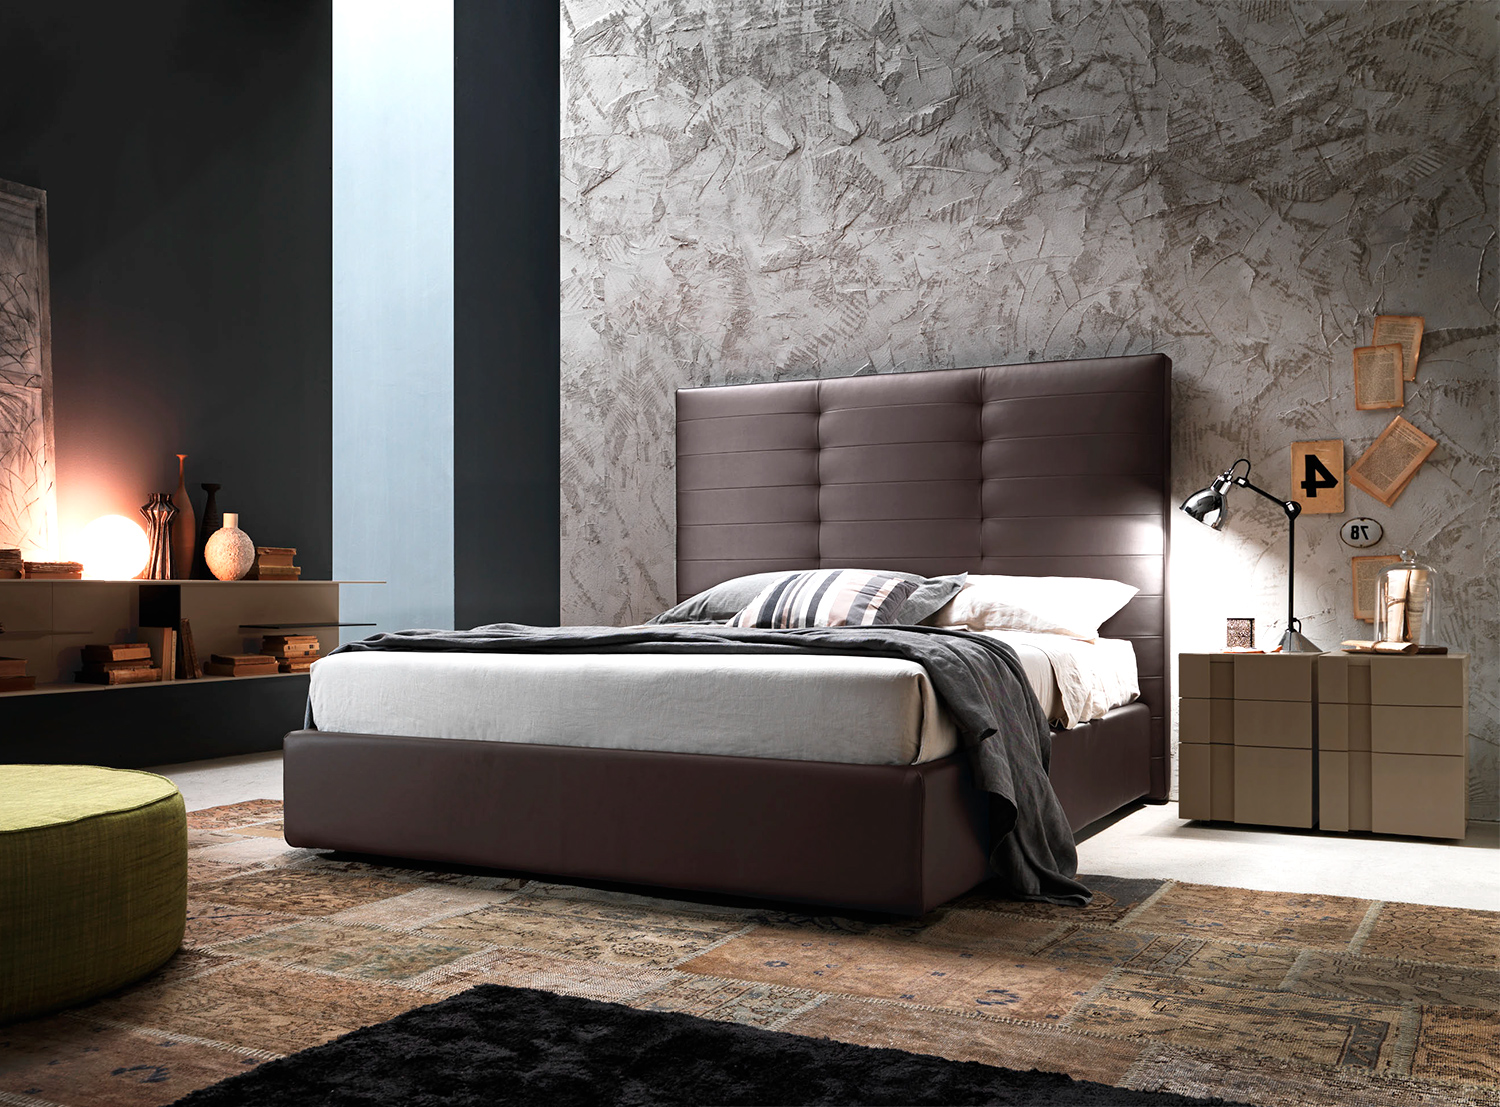 Luxury Italian Designer Wing System Tall Bed